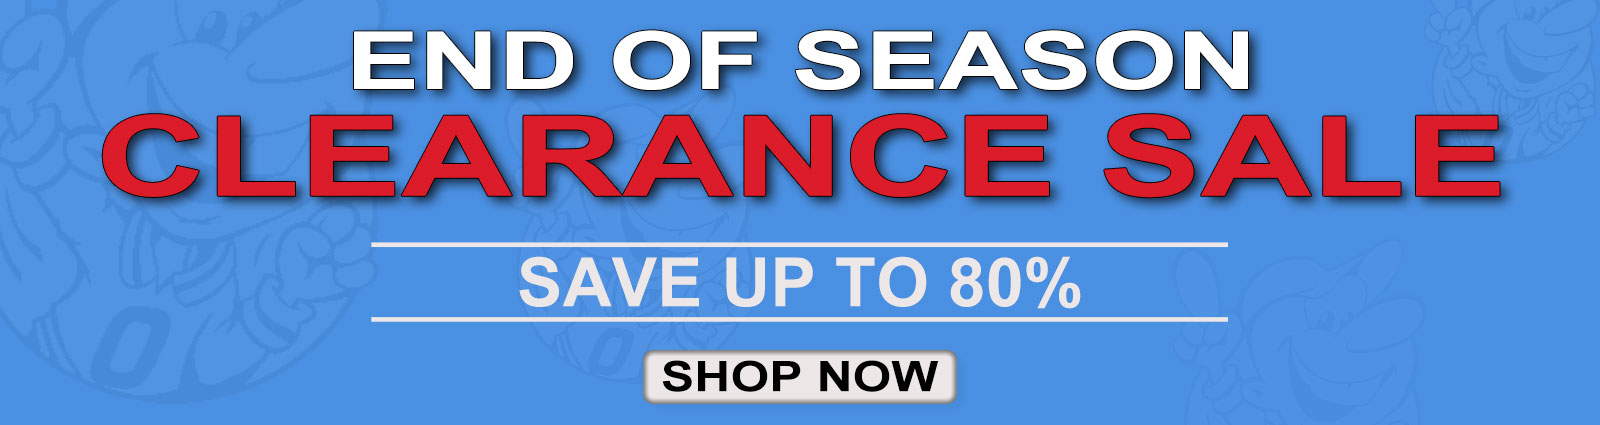 Shop End Of Season Clearance Up to 80% Off.